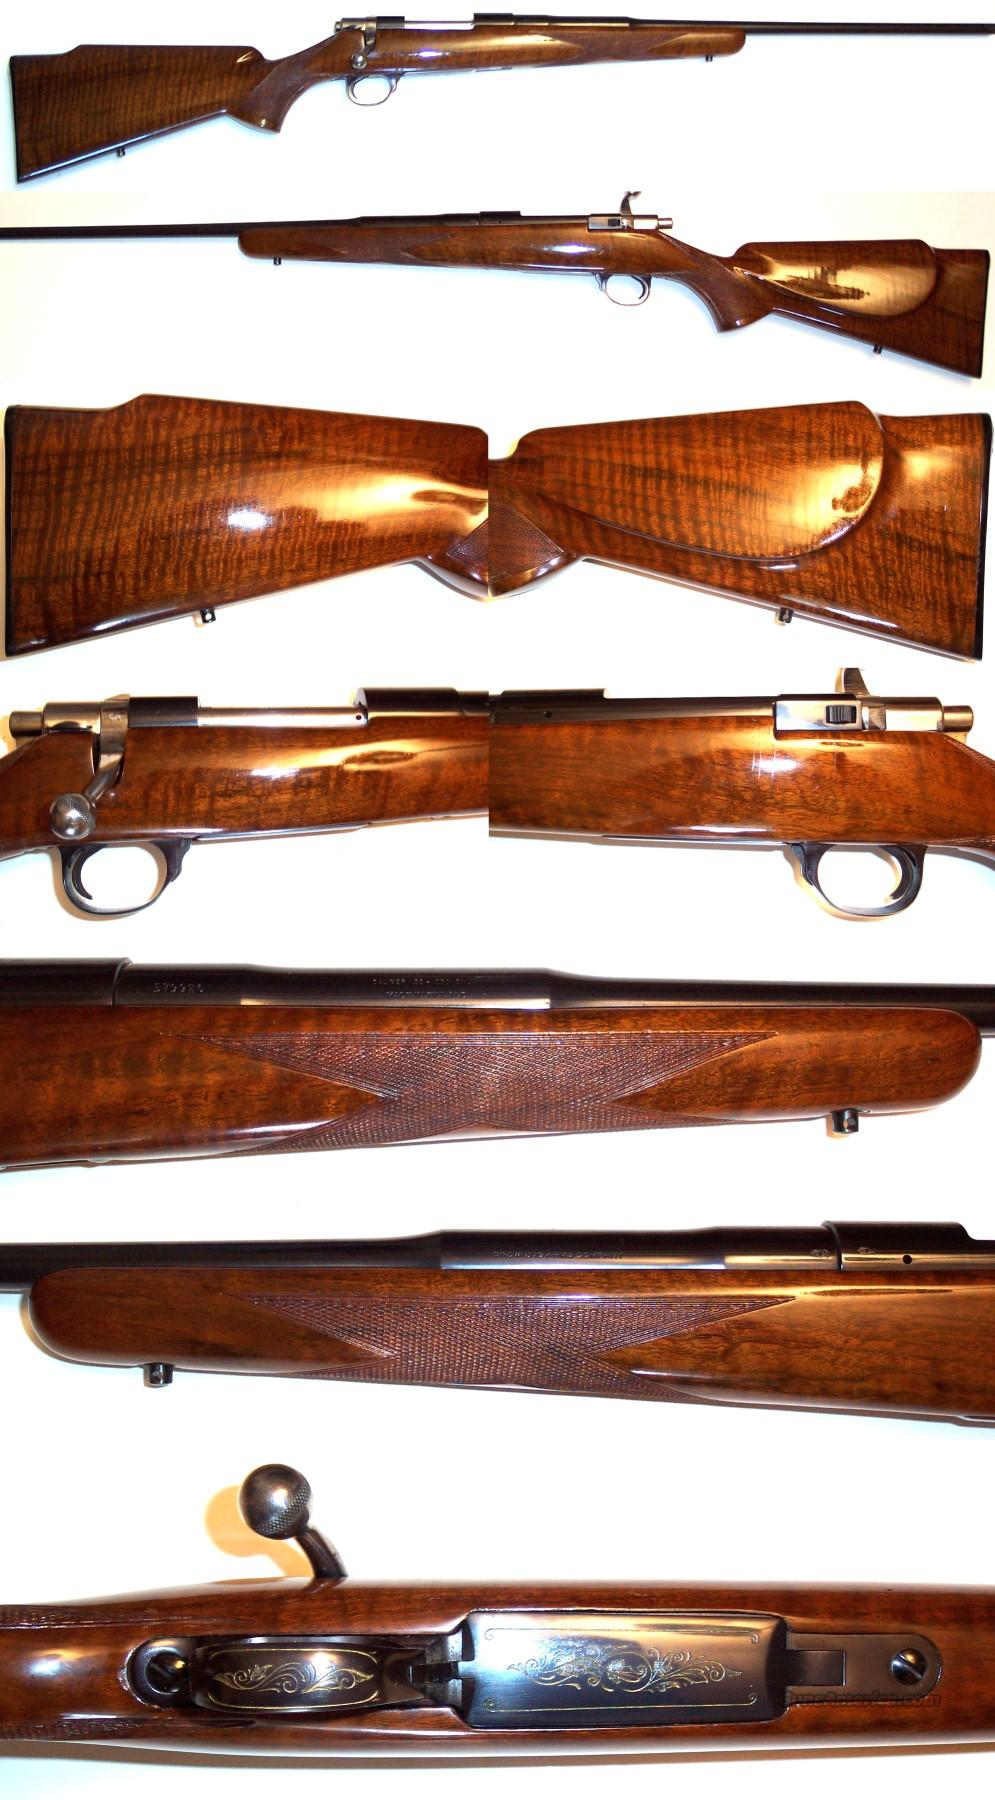 '66 Belgium Browning 22-250 Safari Grade  Guns > Rifles > Browning Rifles > Bolt Action > Hunting > Blue